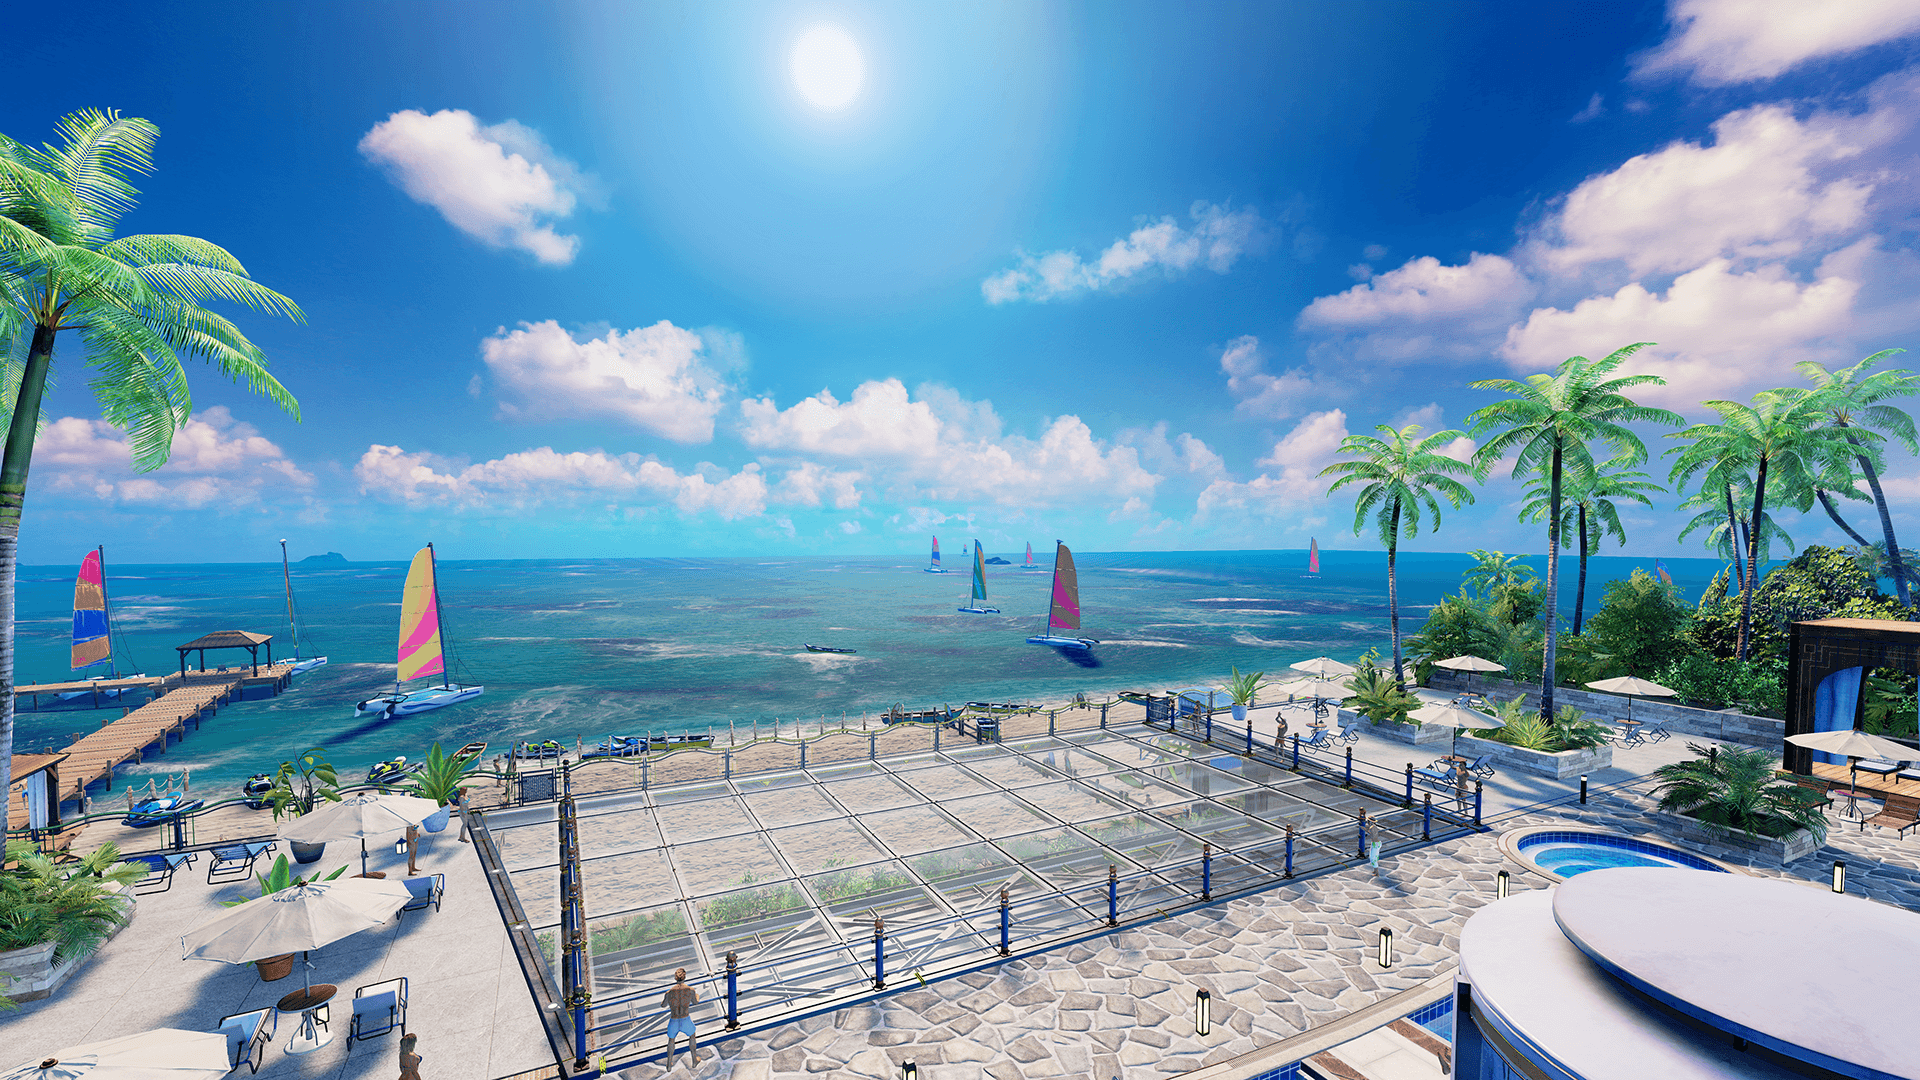 Island Paradise - a new stage for Tekken 7